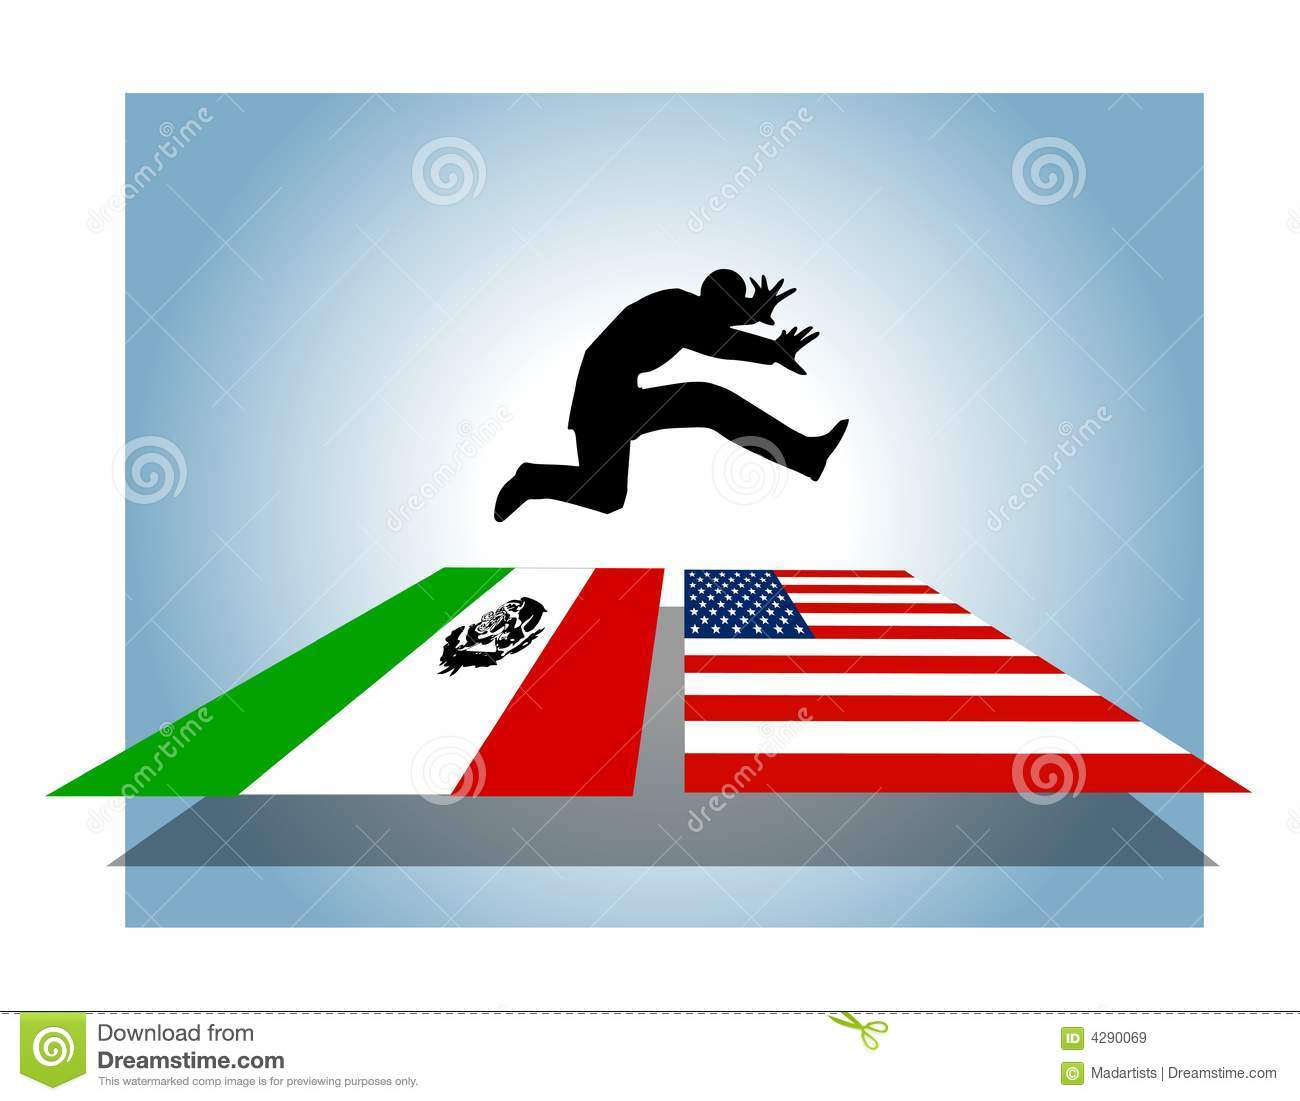 Illegal open border crossing. Immigration clipart clip art royalty free stock